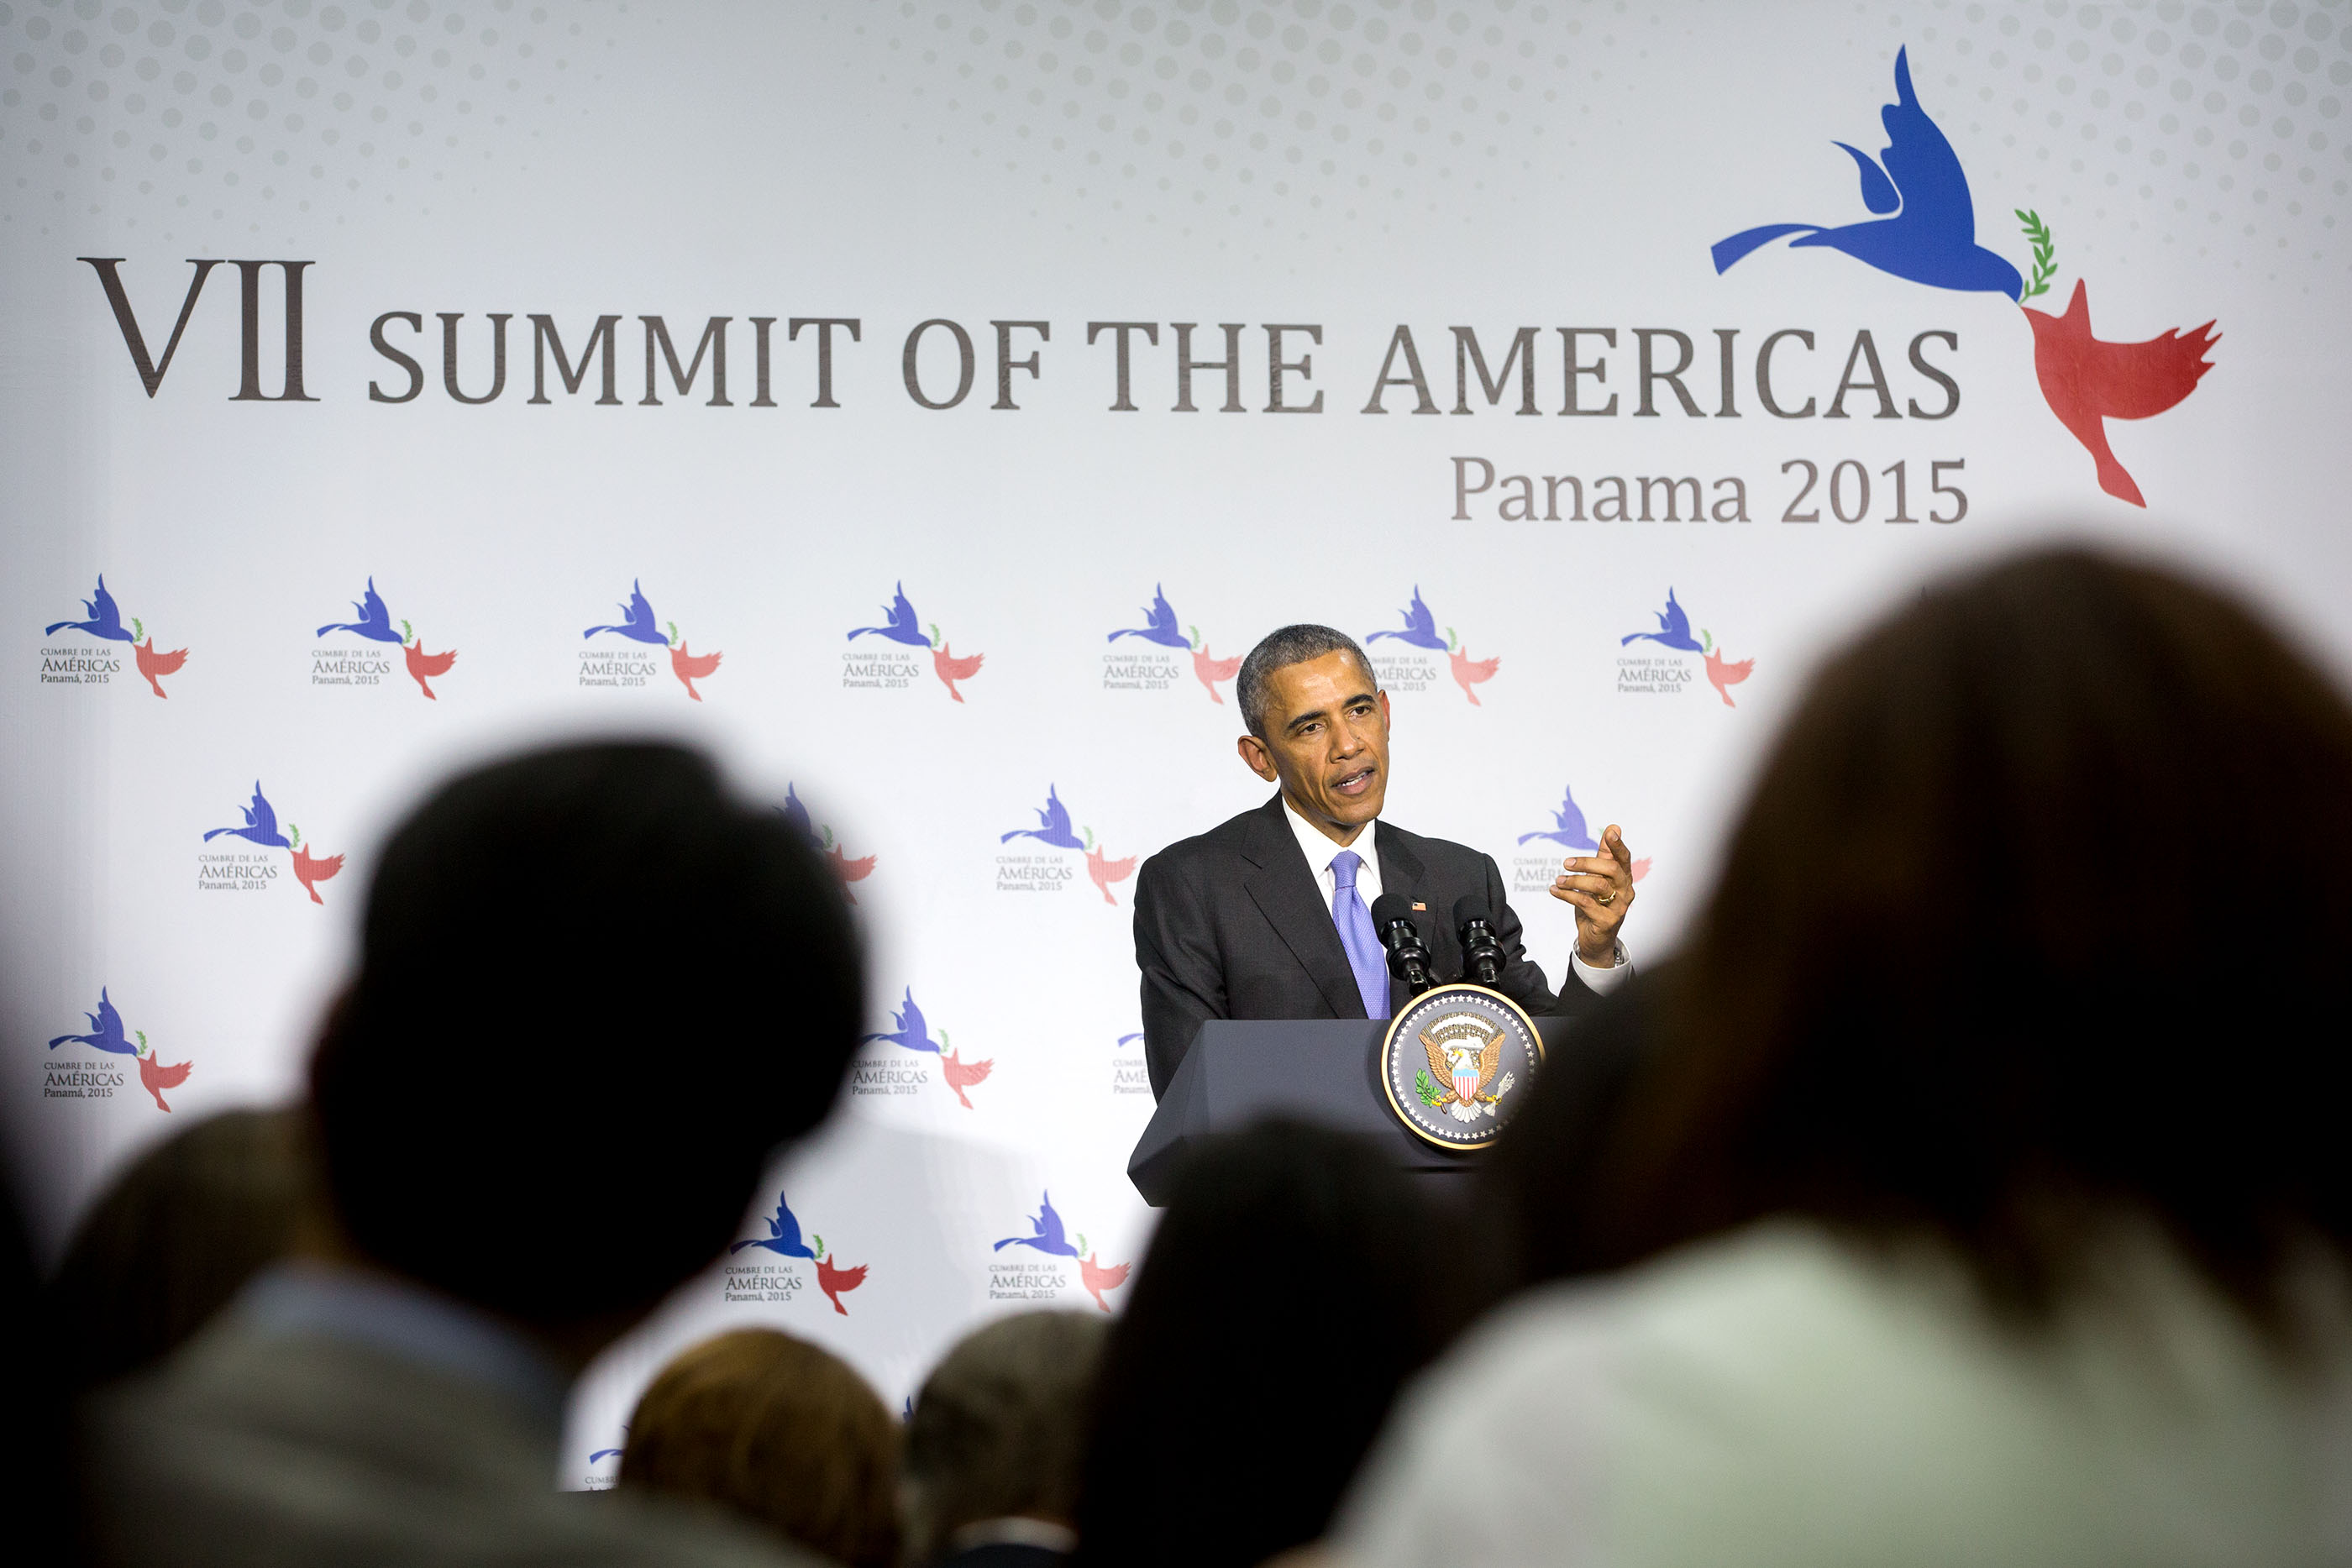 President Obama speaks during a press conference at the conclusion of the Summit of the Americas at the ATLAPA Convention Center. (Official White House Photo by Amanda Lucidon)